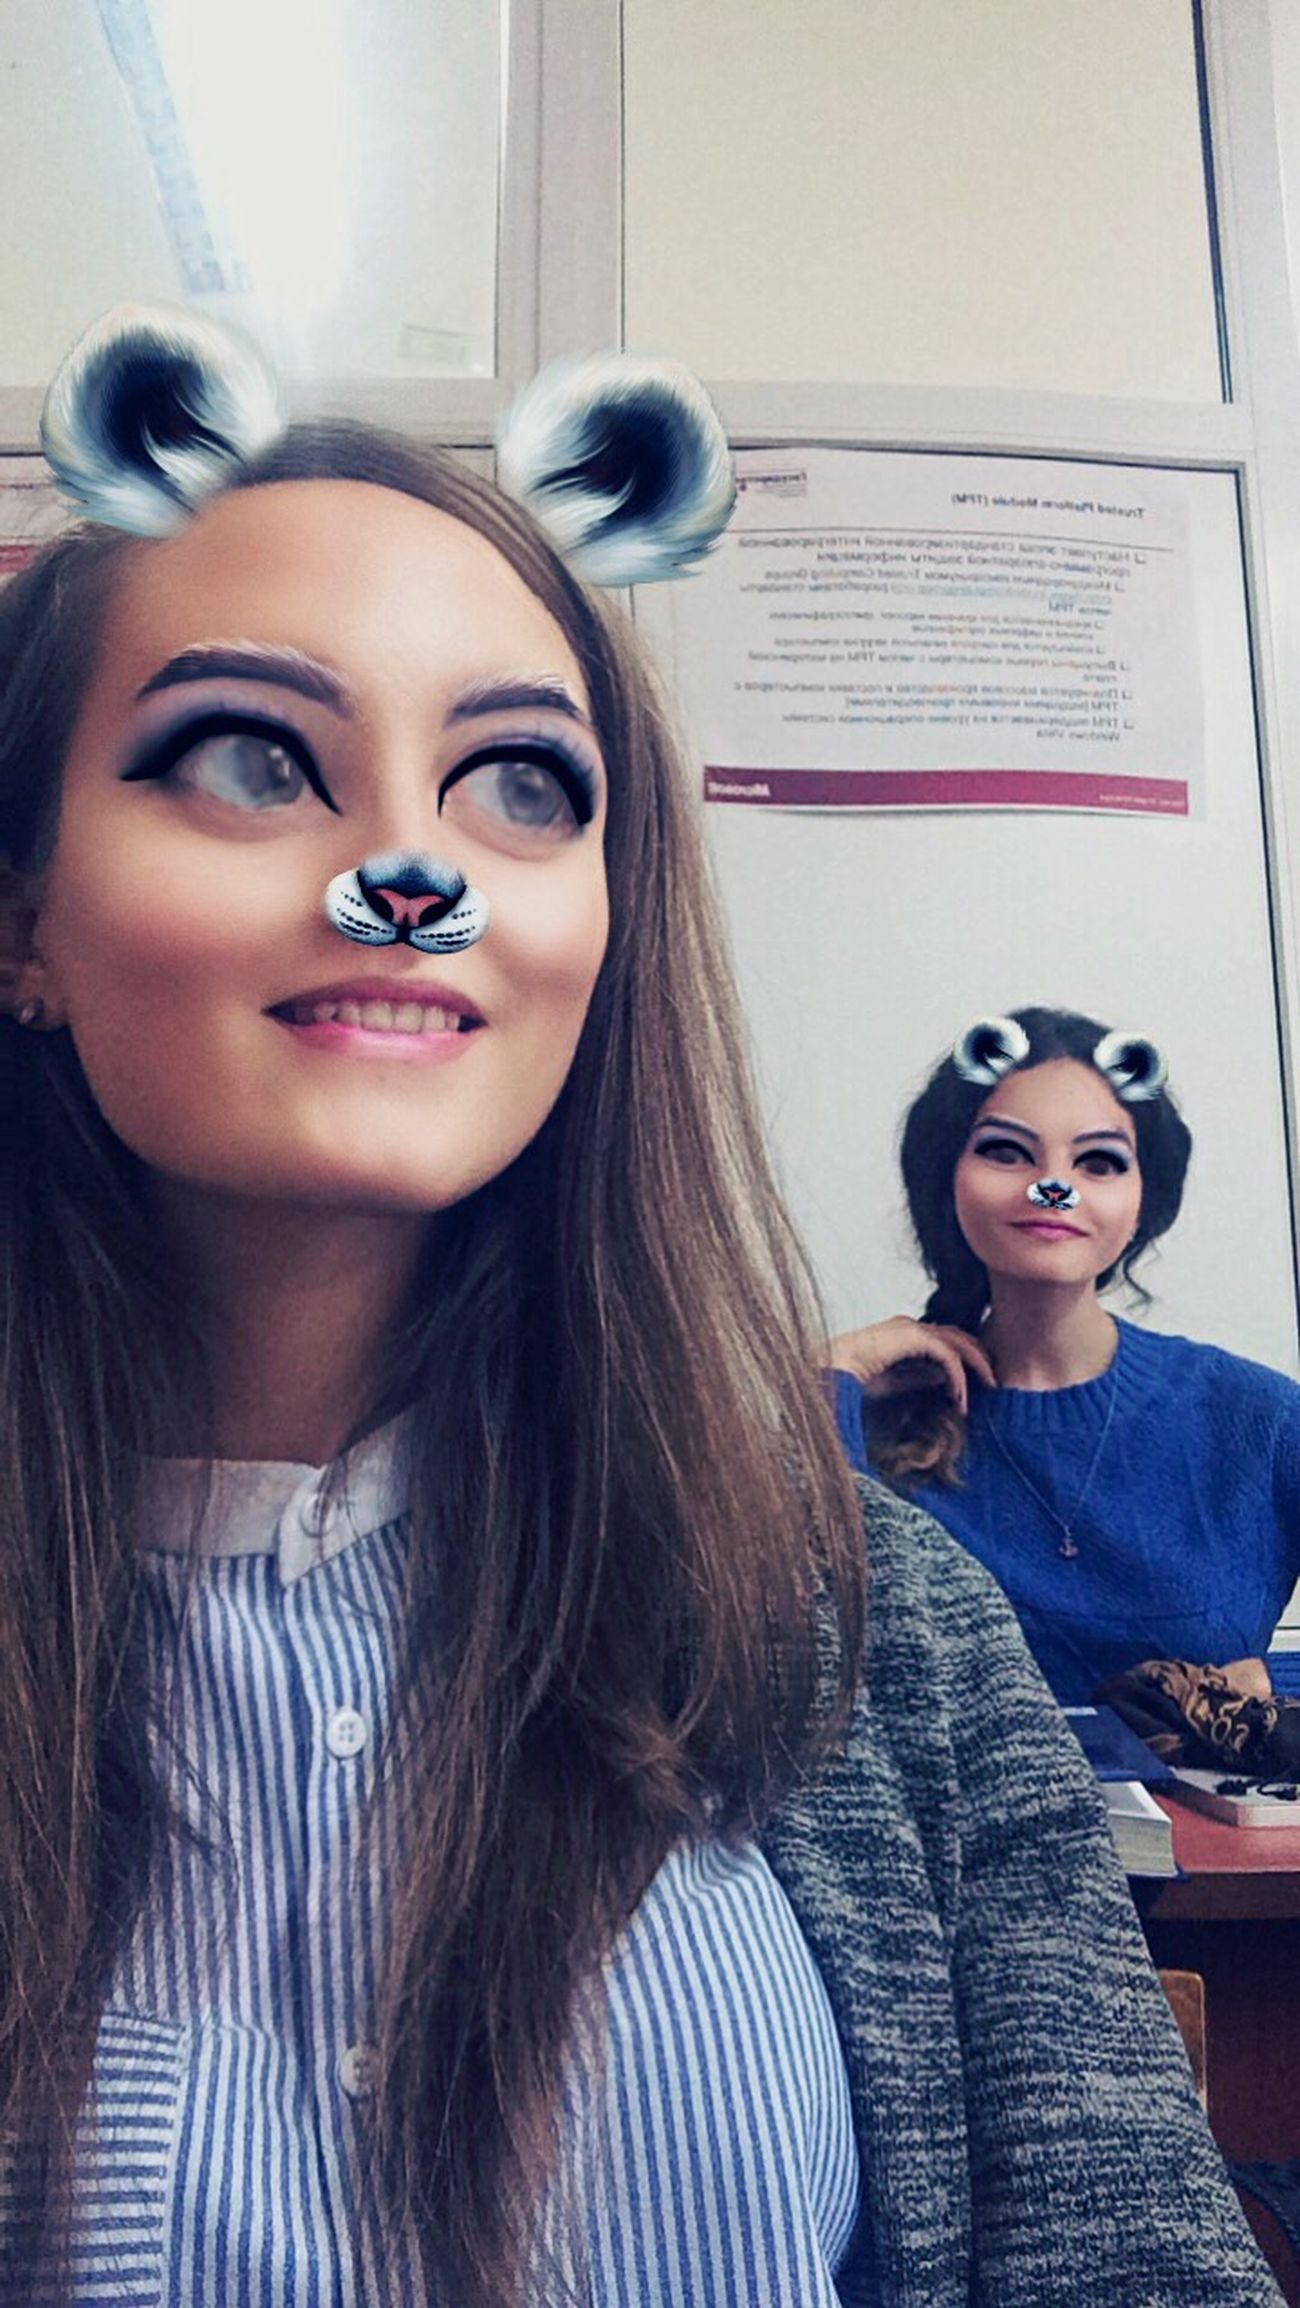 Young Women Eyeglasses  Lifestyles Selfie Snapchat VSCO Beauty Girls Funny Lesson University Cute Smiling Russian Girl Beautiful People